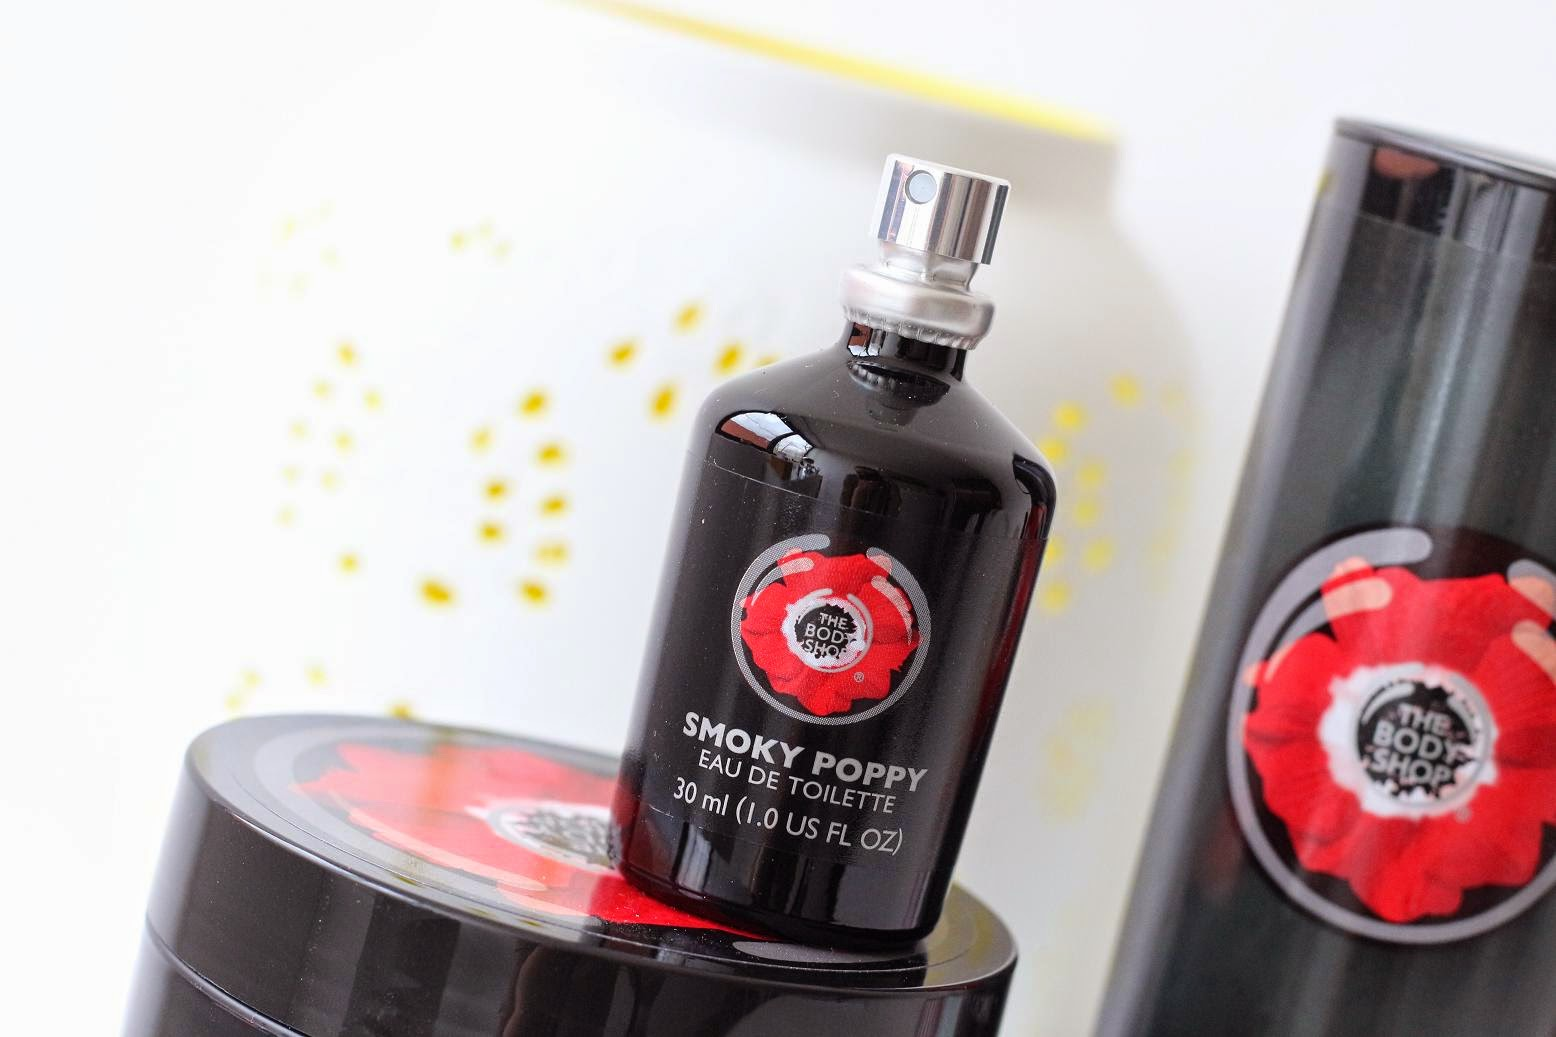 The Body Shop Smoky Poppy